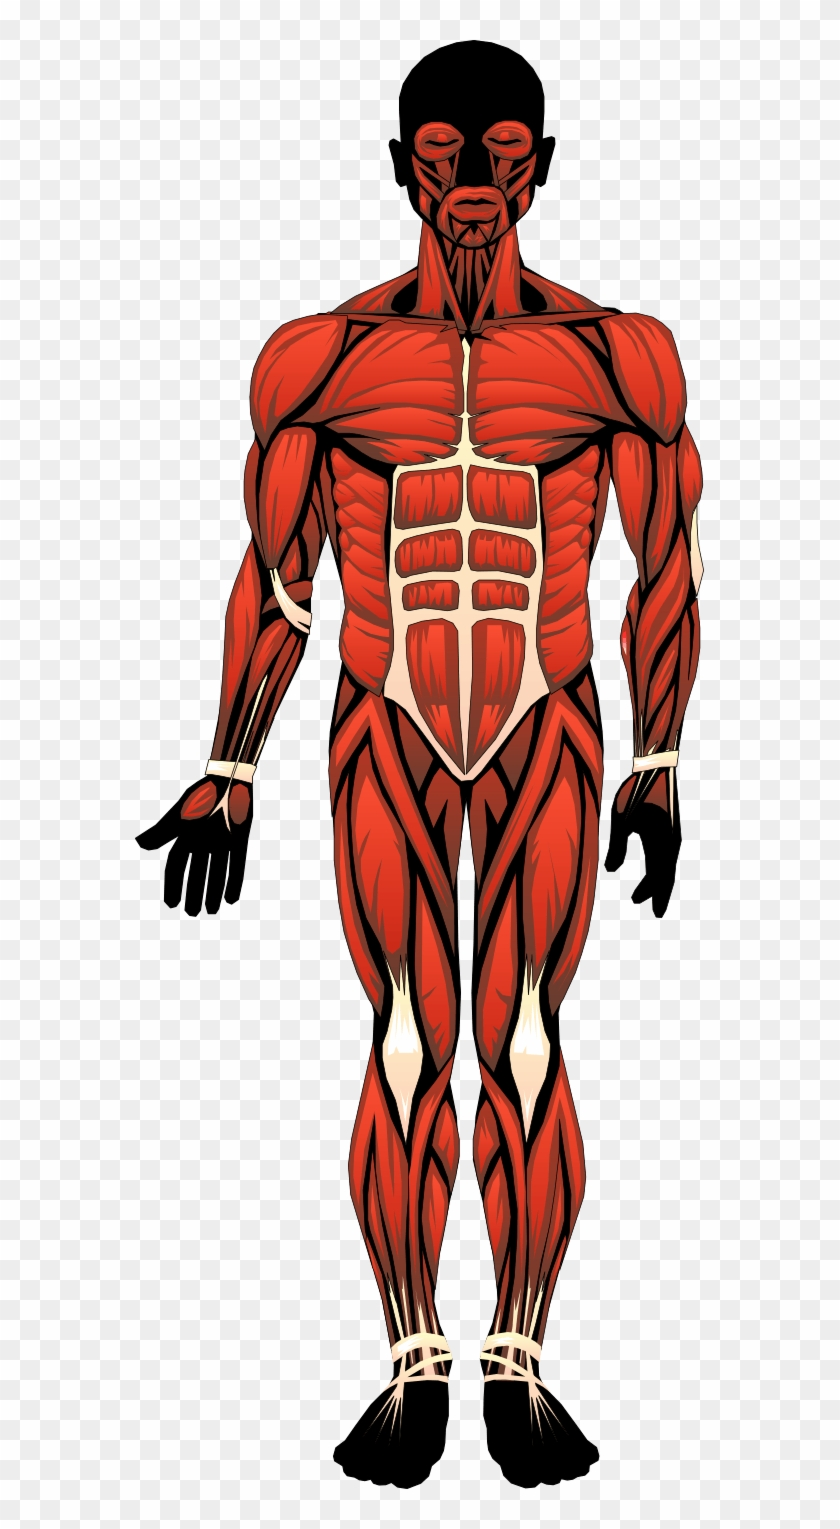 Clipart Anatomy Human Body Skeletal Muscles Located In The Body